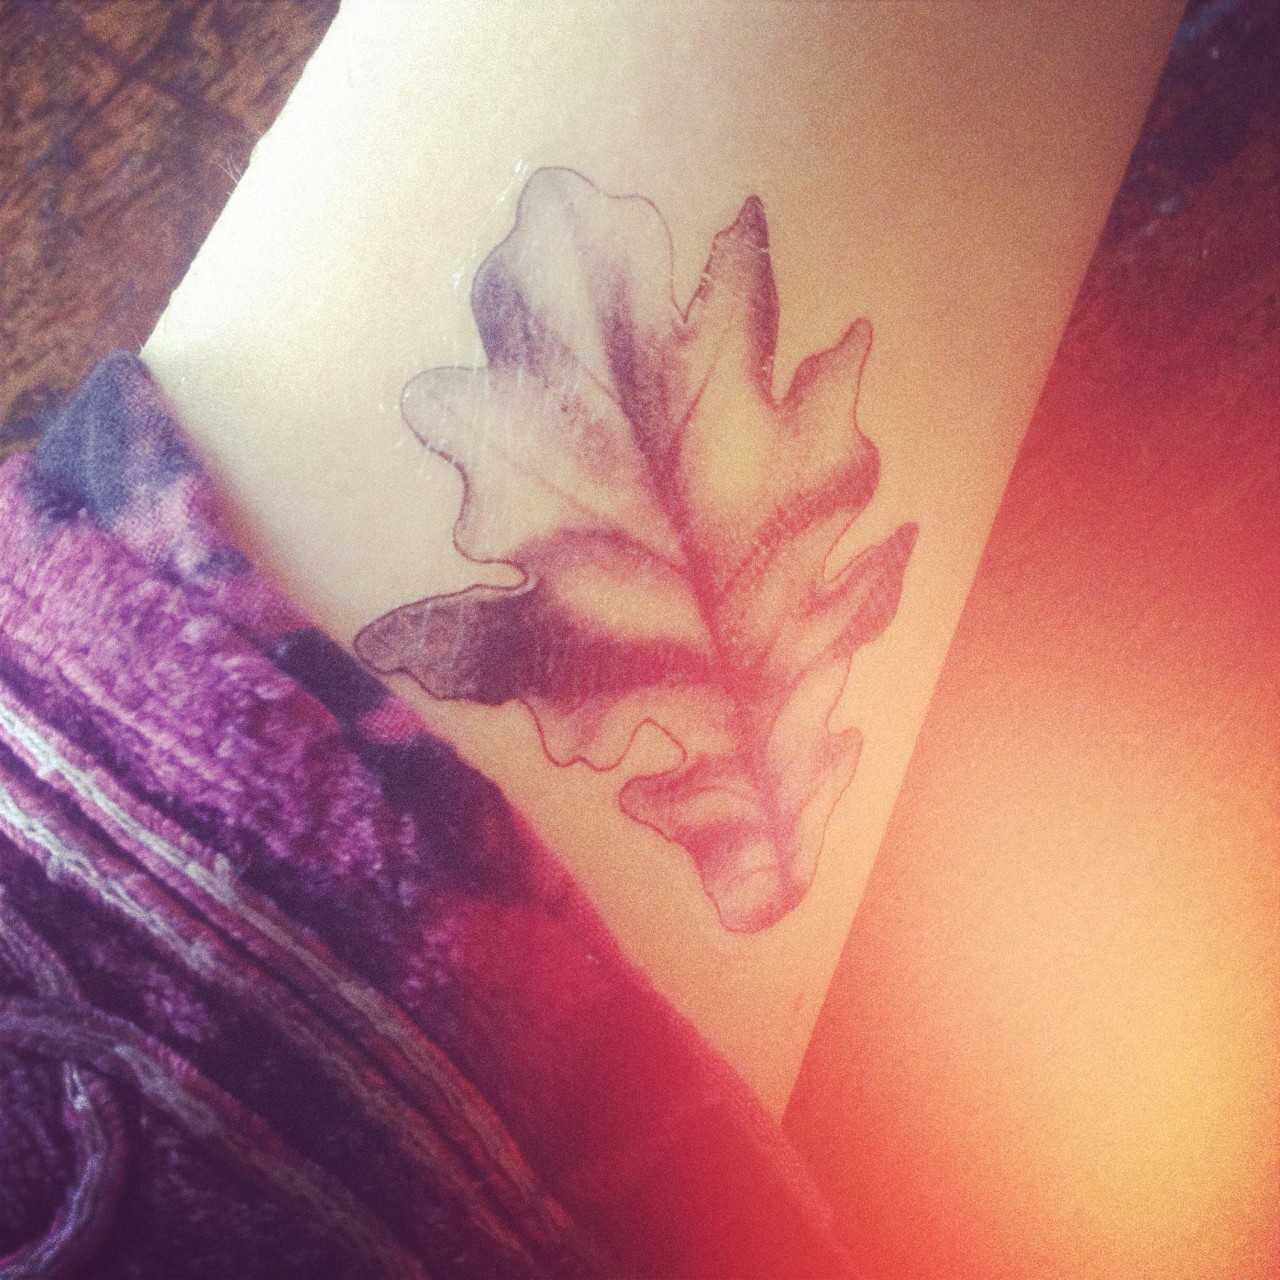 Make A Henna Tattoo Last Longer: How To Make A Temporary Tattoo Last Longer + Removing A